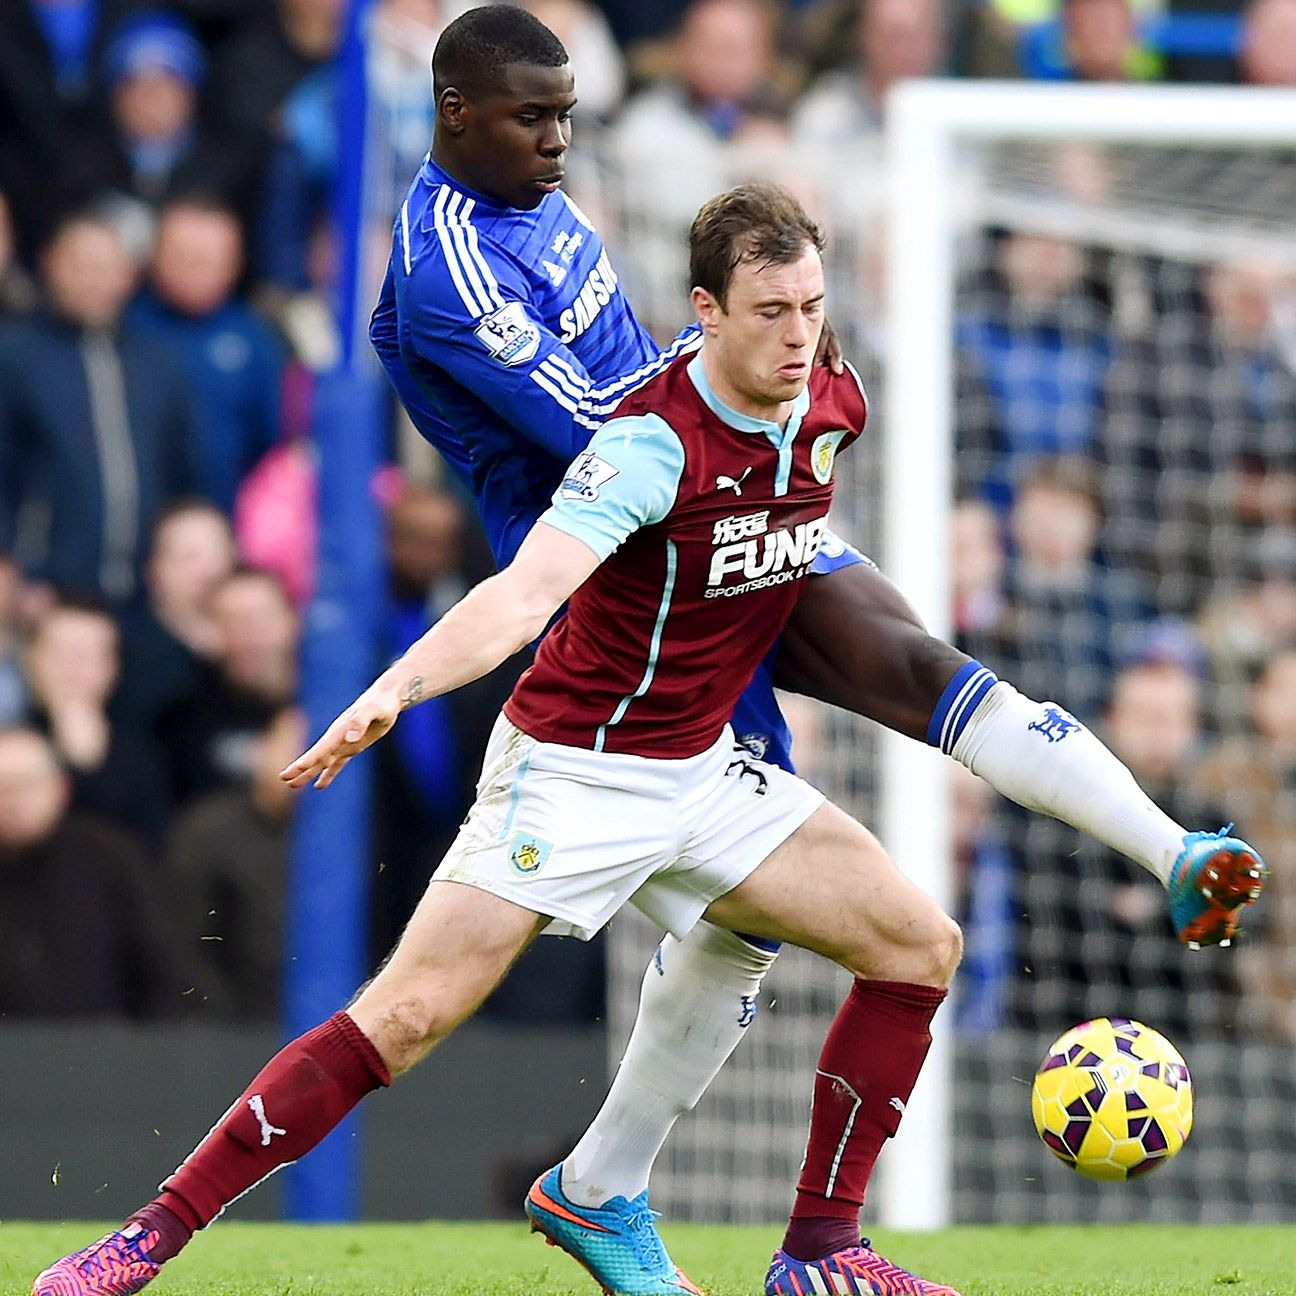 Controversy aside, Ashley Barnes delivered a solid performance up top for Burnley at Chelsea.